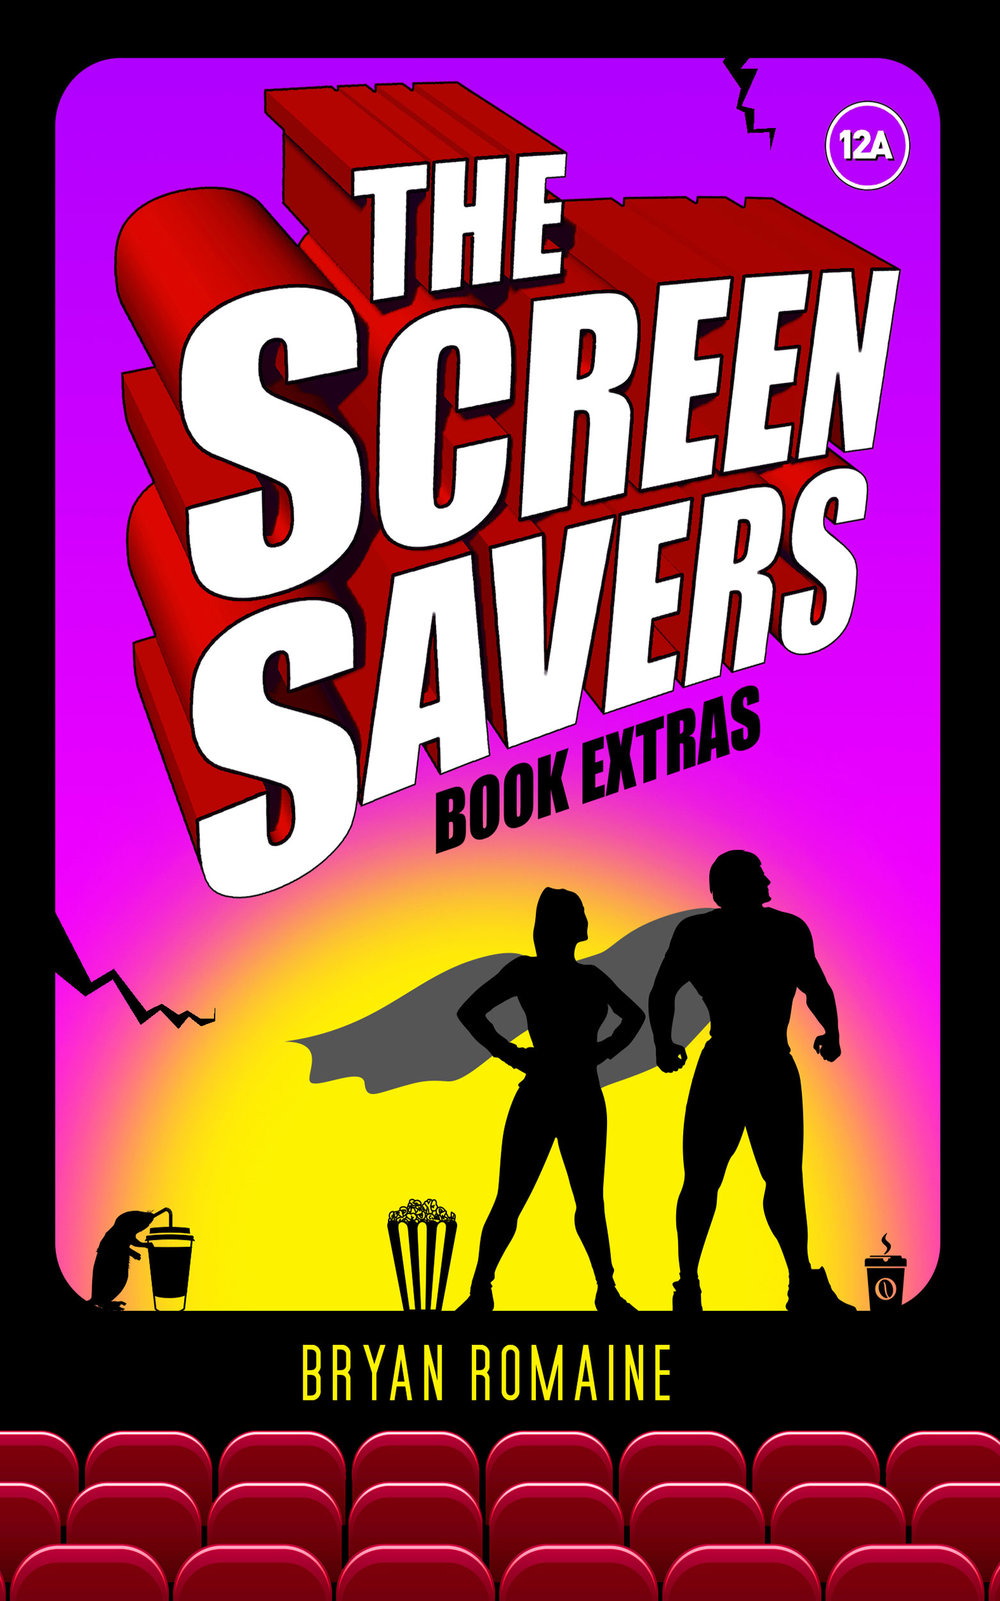 SCREENSAVERS_BOOKEXTRAS_KINDLE_1562X2500sfw.jpg